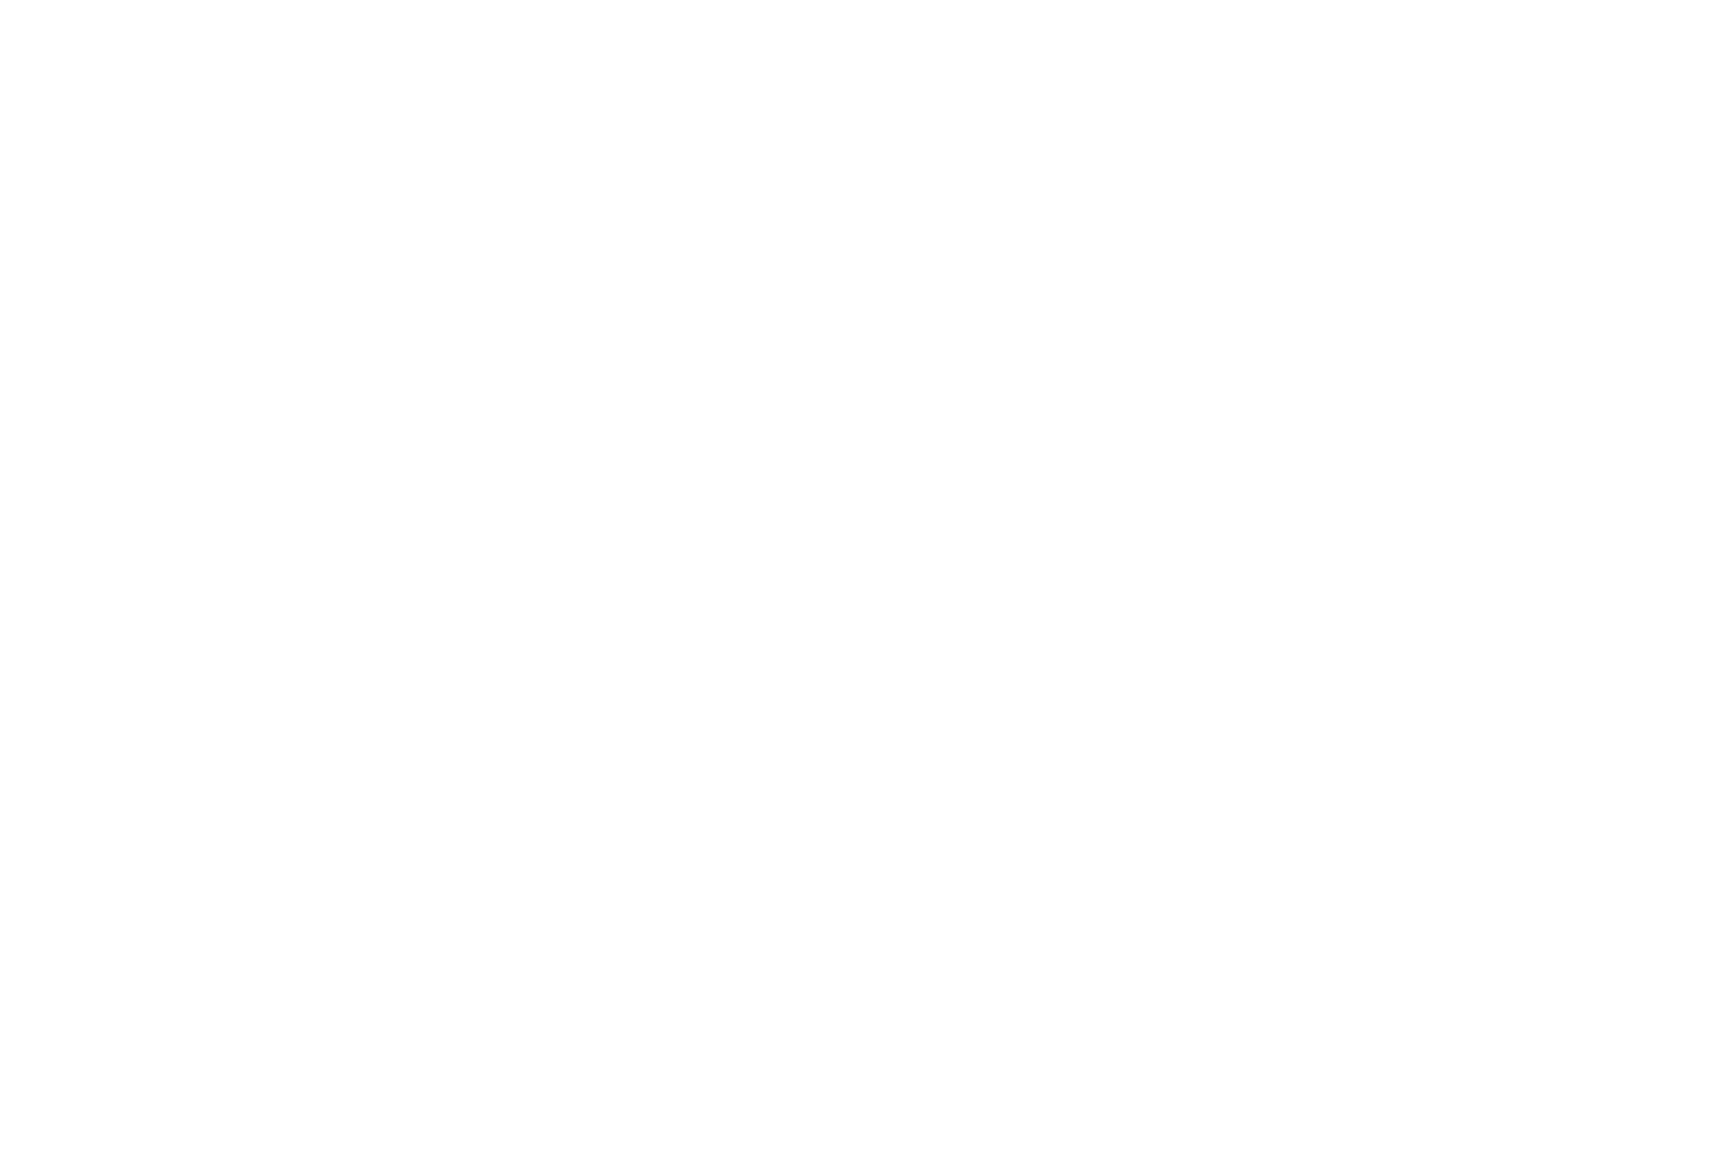 OFFICIAL SELECTION - New Hope Film Festival 2017 - Letting Go.png